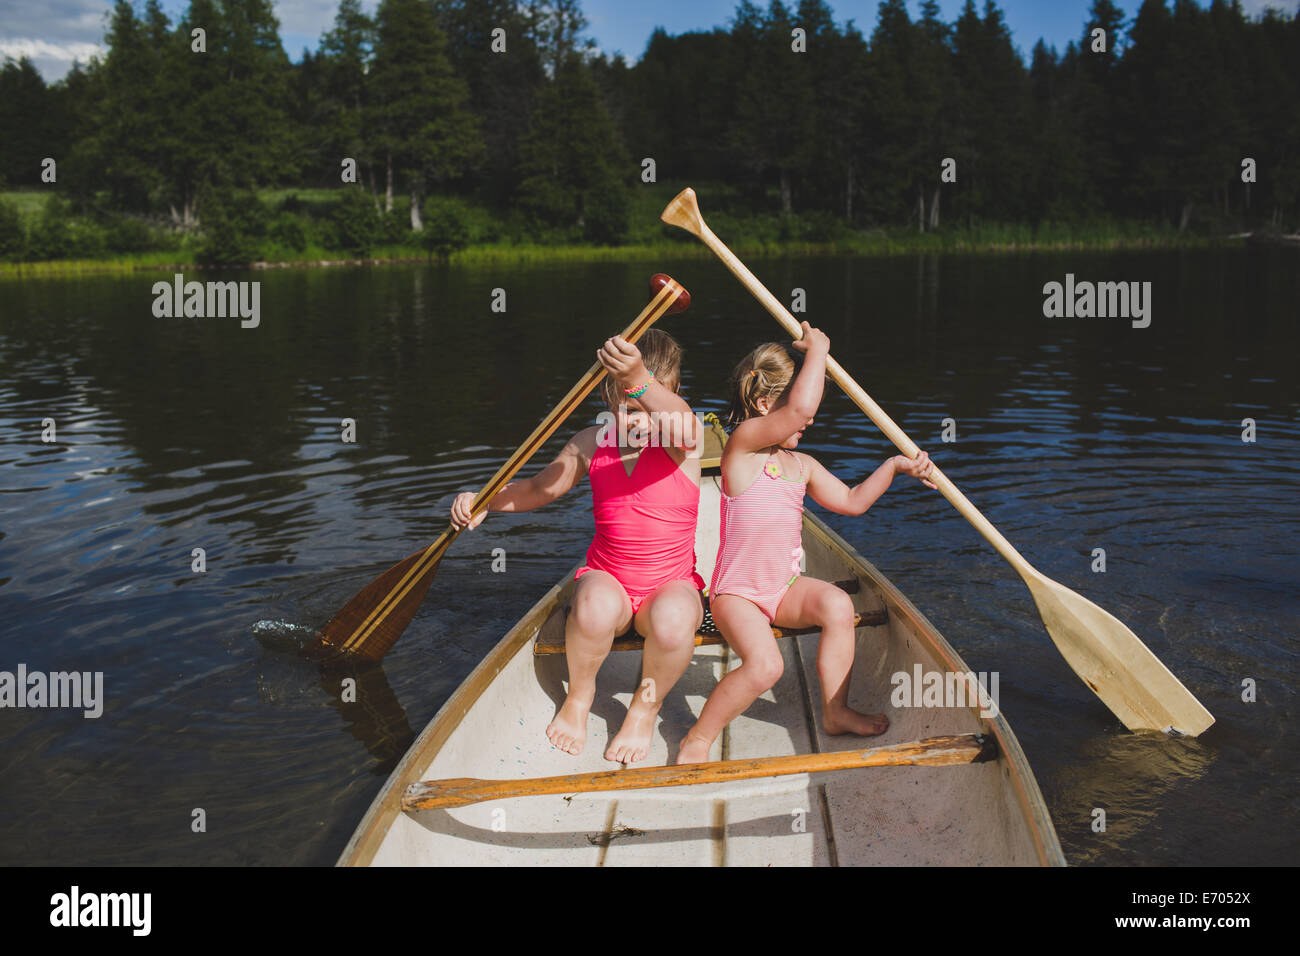 Two young sisters rowing in canoe on Indian river, Ontario, Canada Stock Photo